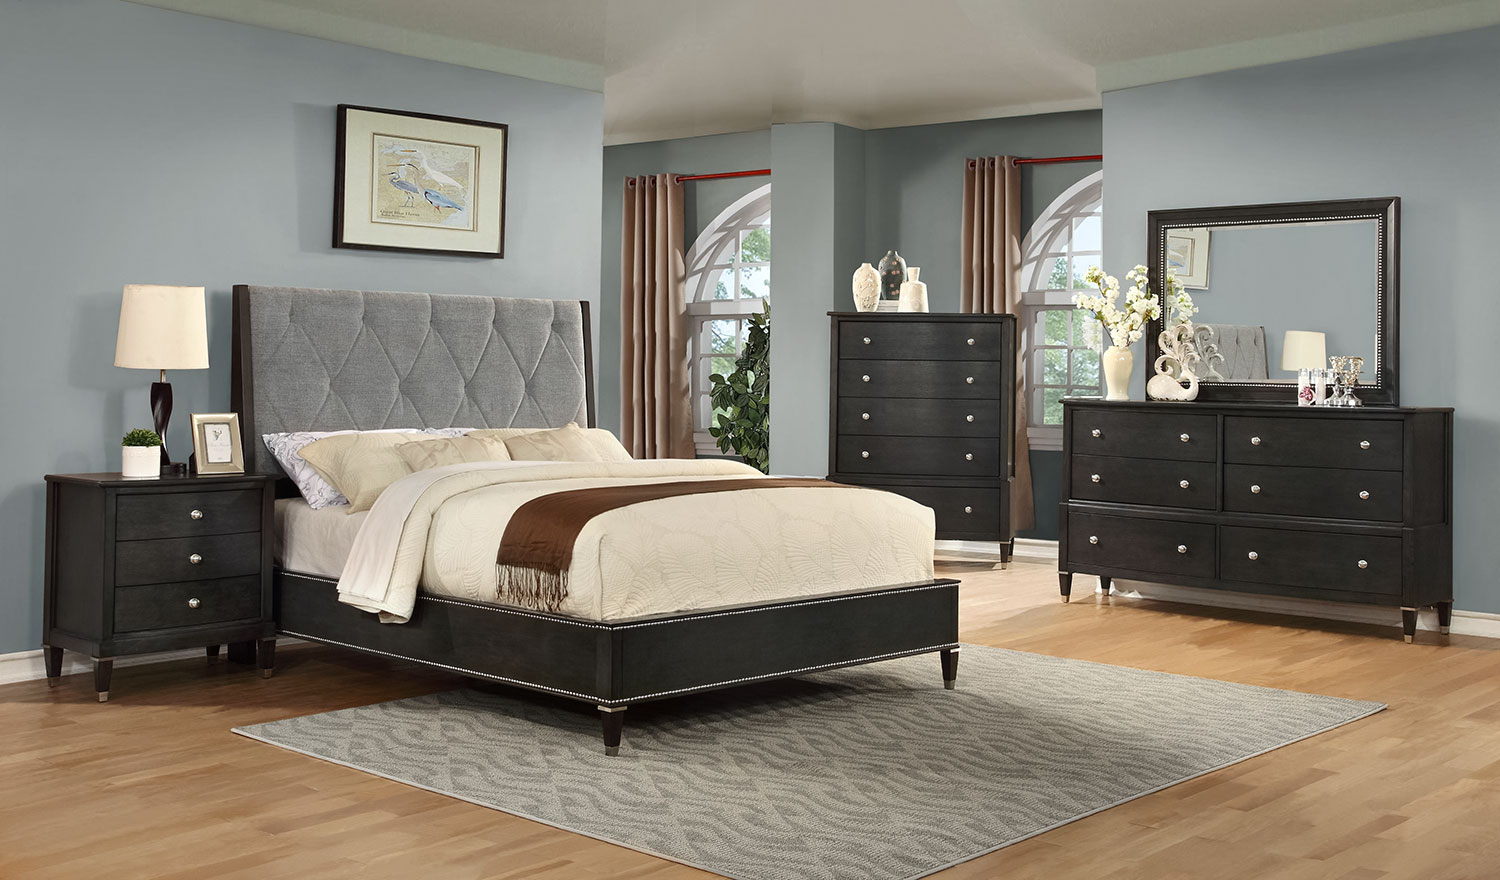 Nelson 5-Piece Queen Bedroom Set - Espresso